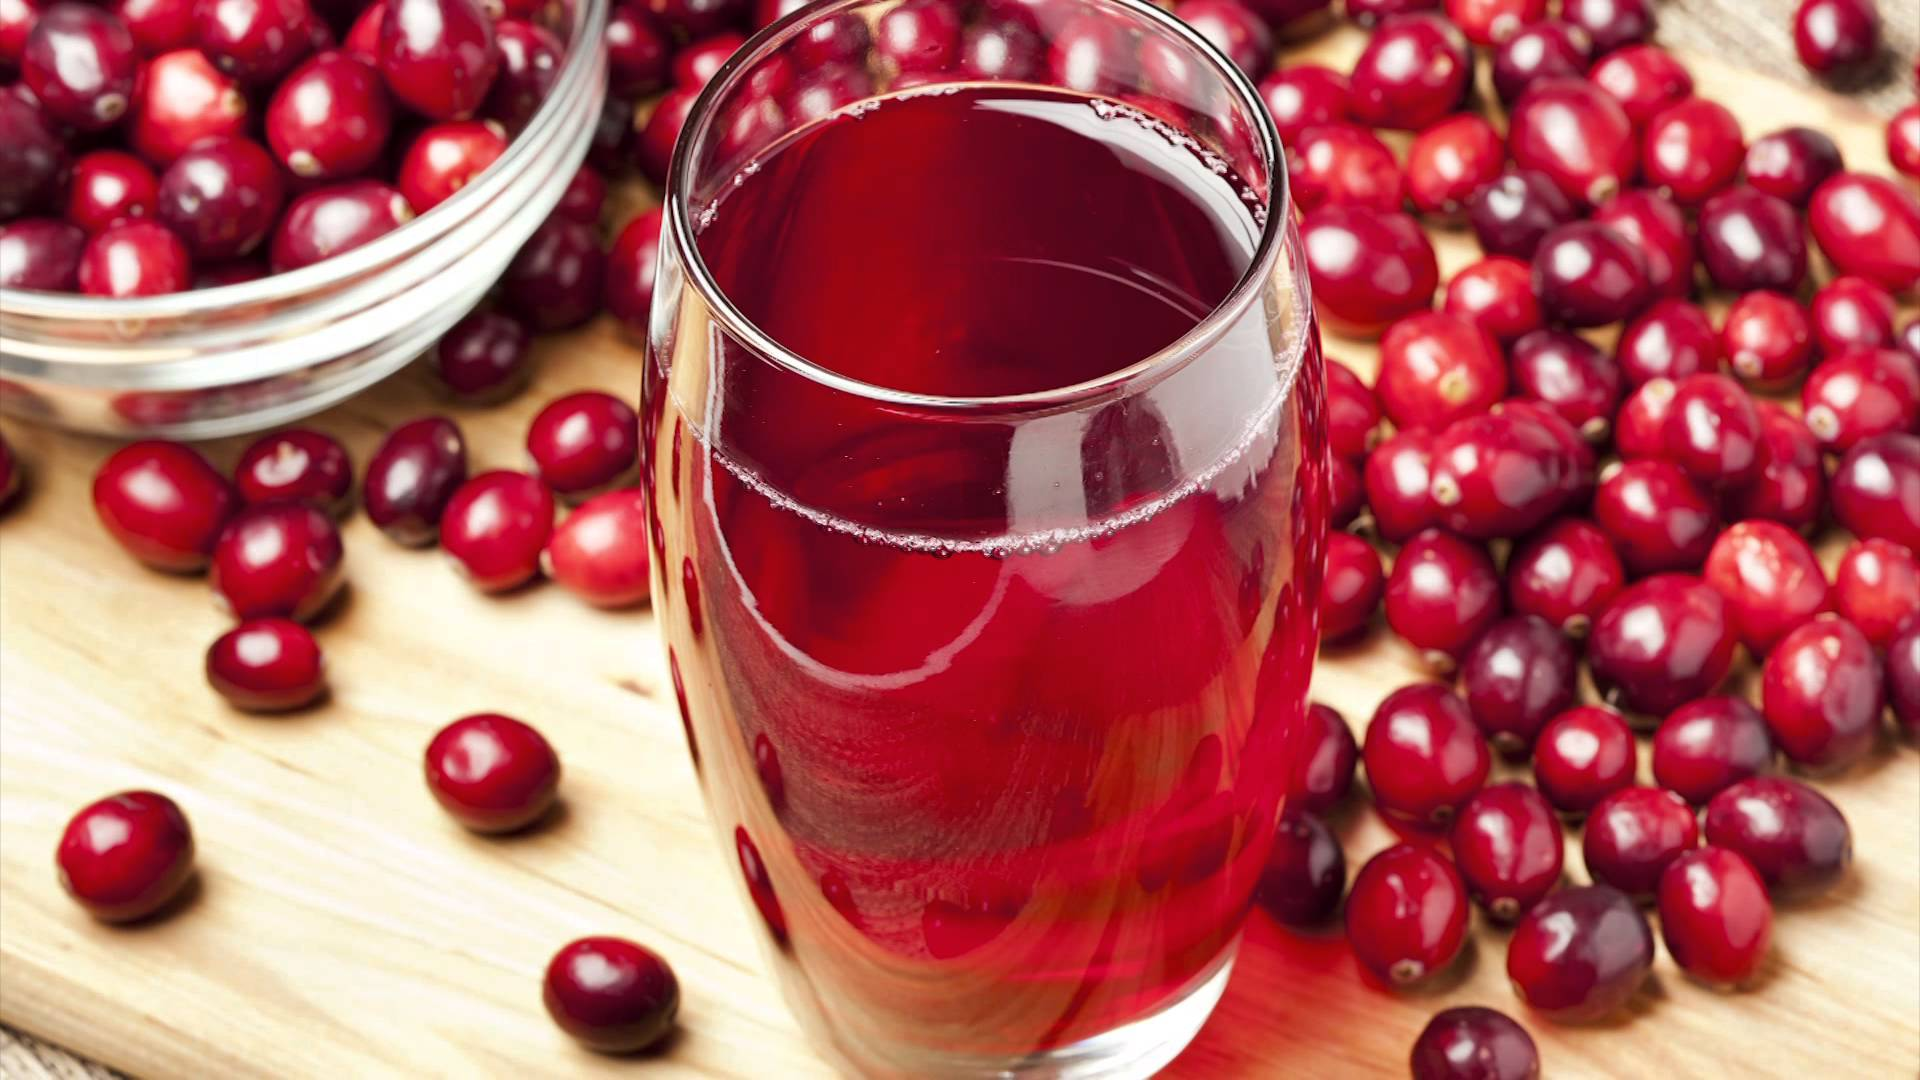 Winter Health Special: How to Prevent and Treat UTIs